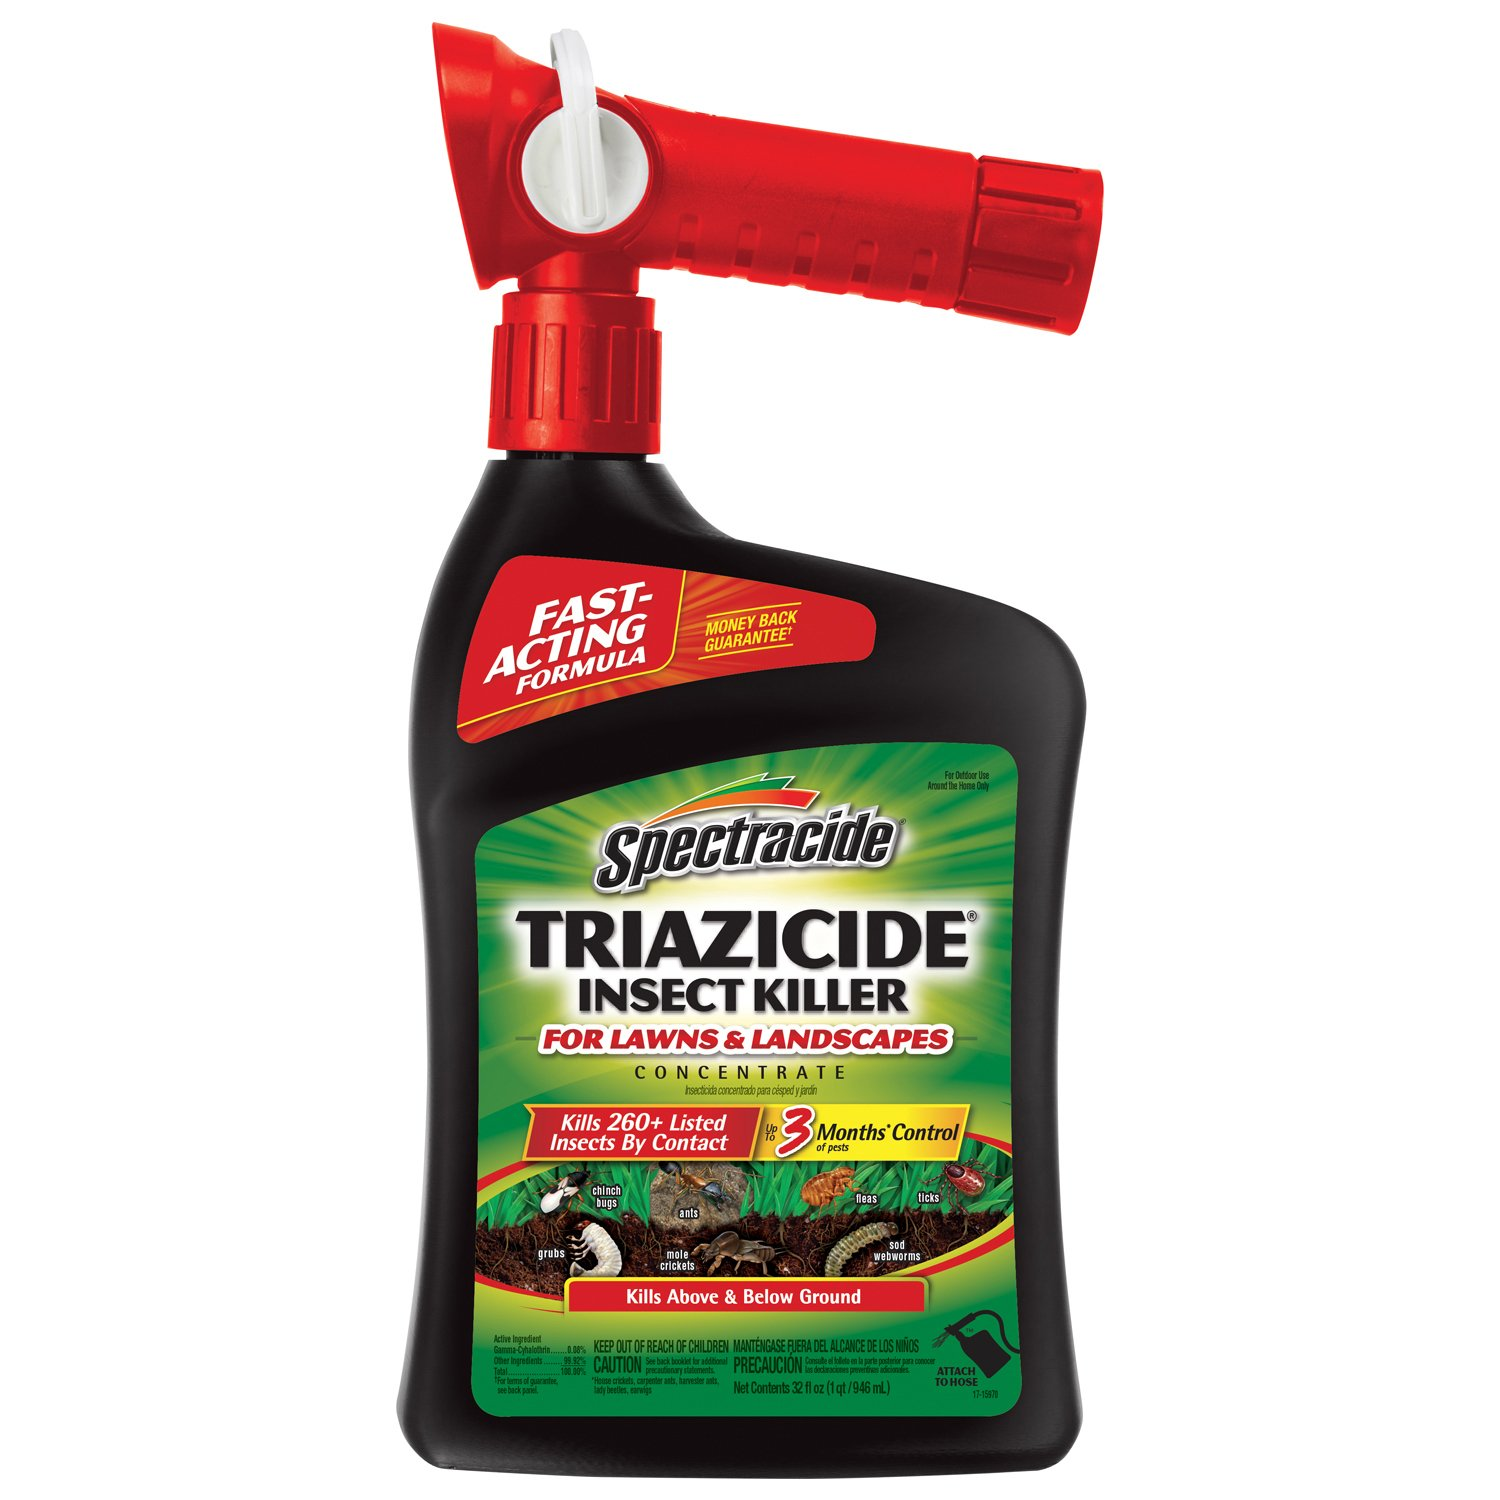 Spectracide Triazicide Insect Killer for Lawns & Landscapes Concentrate (Ready-to-Spray) Review